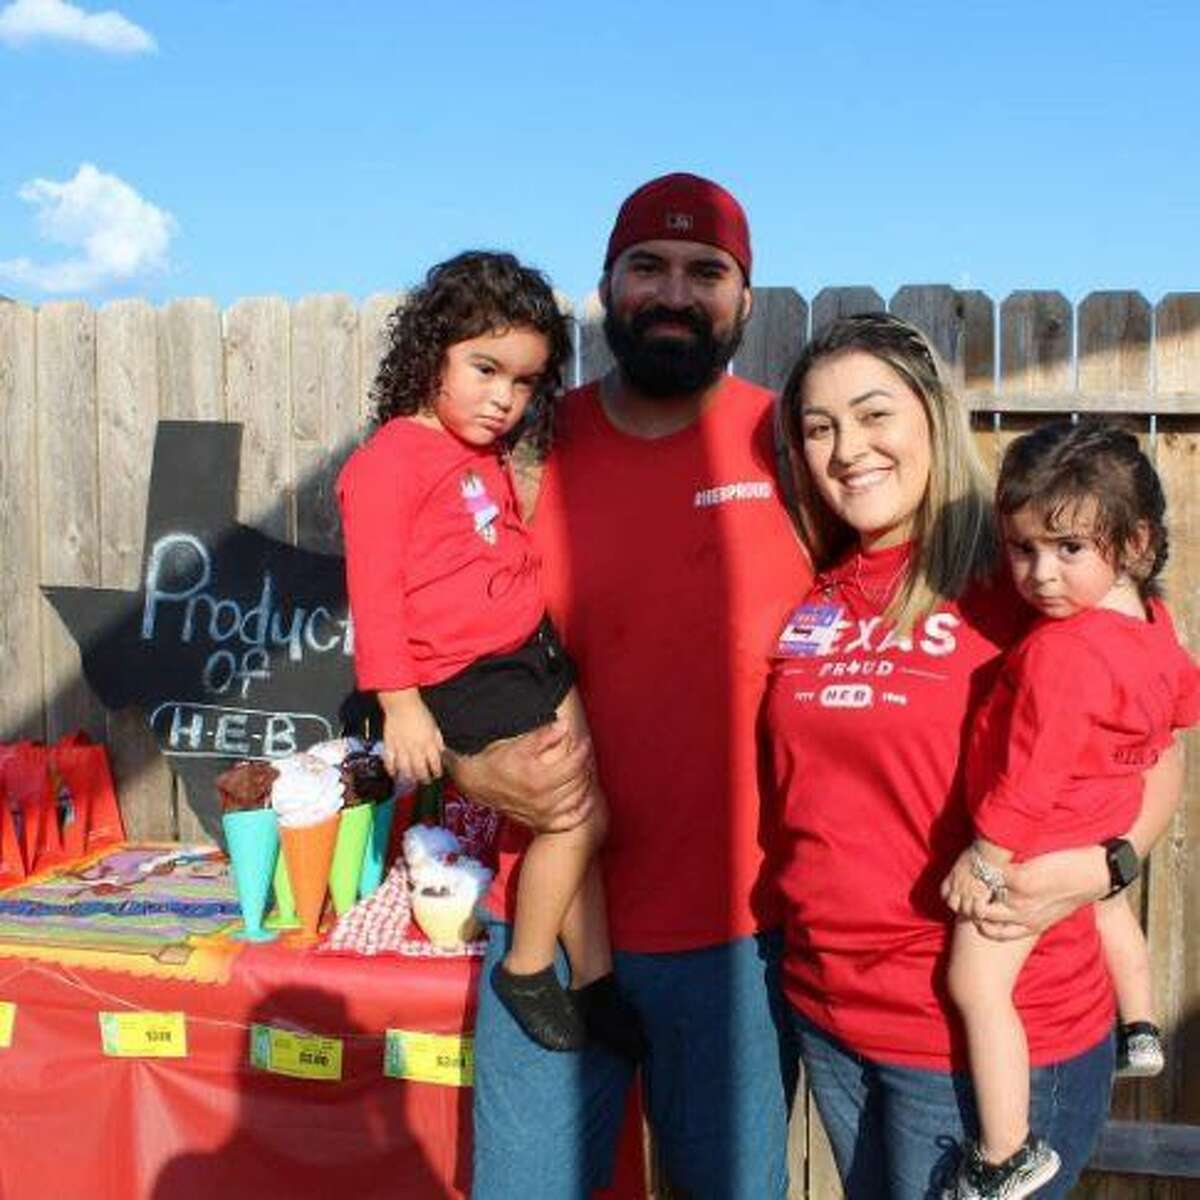 Jessica Belasquez shared the details of her daughter Alyna's third birthday party which was celebrated in full H-E-B theme. Even the H-E-Buddy was on hand.